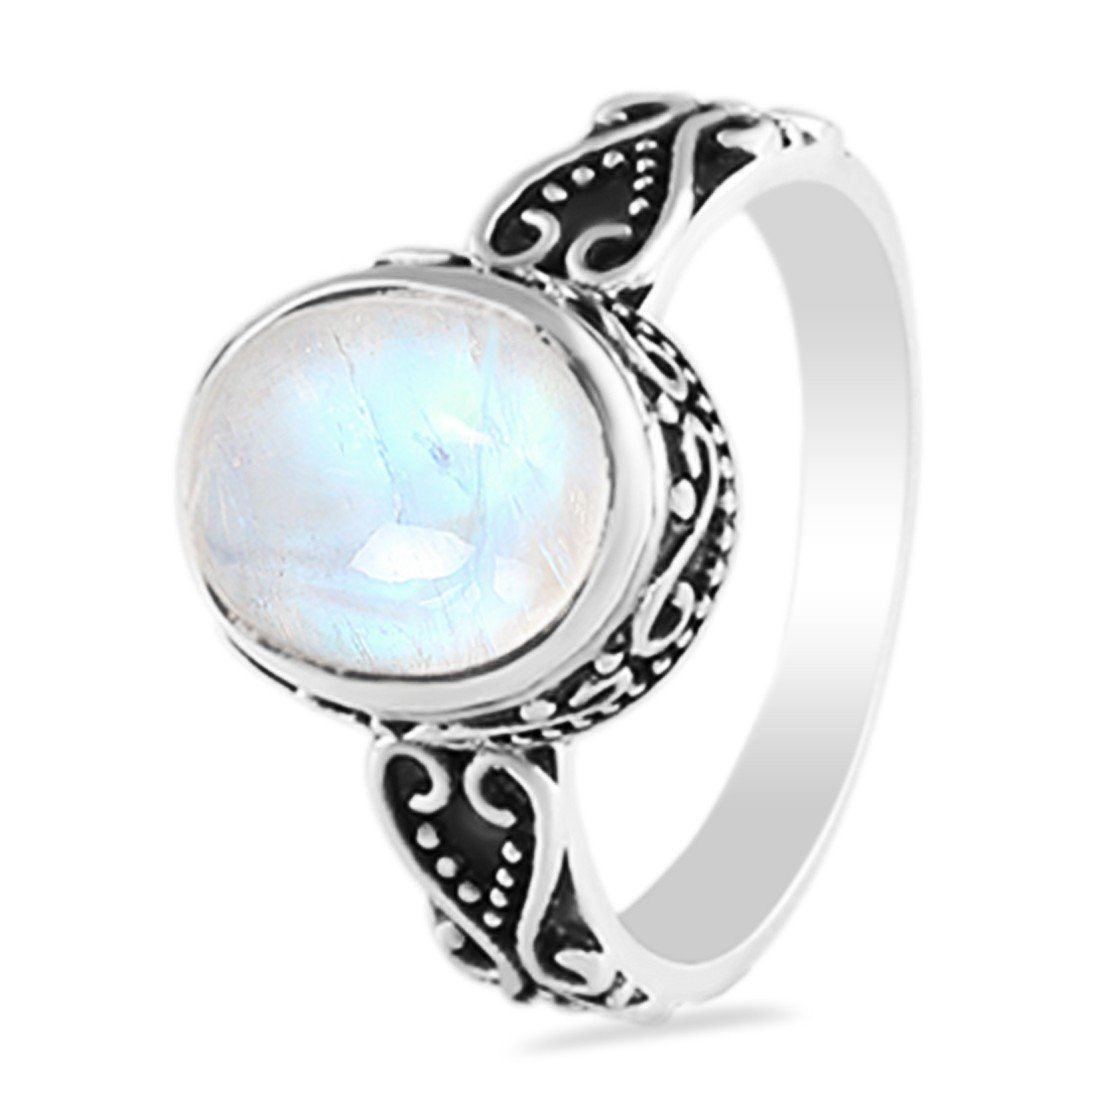 Moonstone Ring-Sparkling Moonshine Moonstone Ring 925 SILVER & MOONSTONE